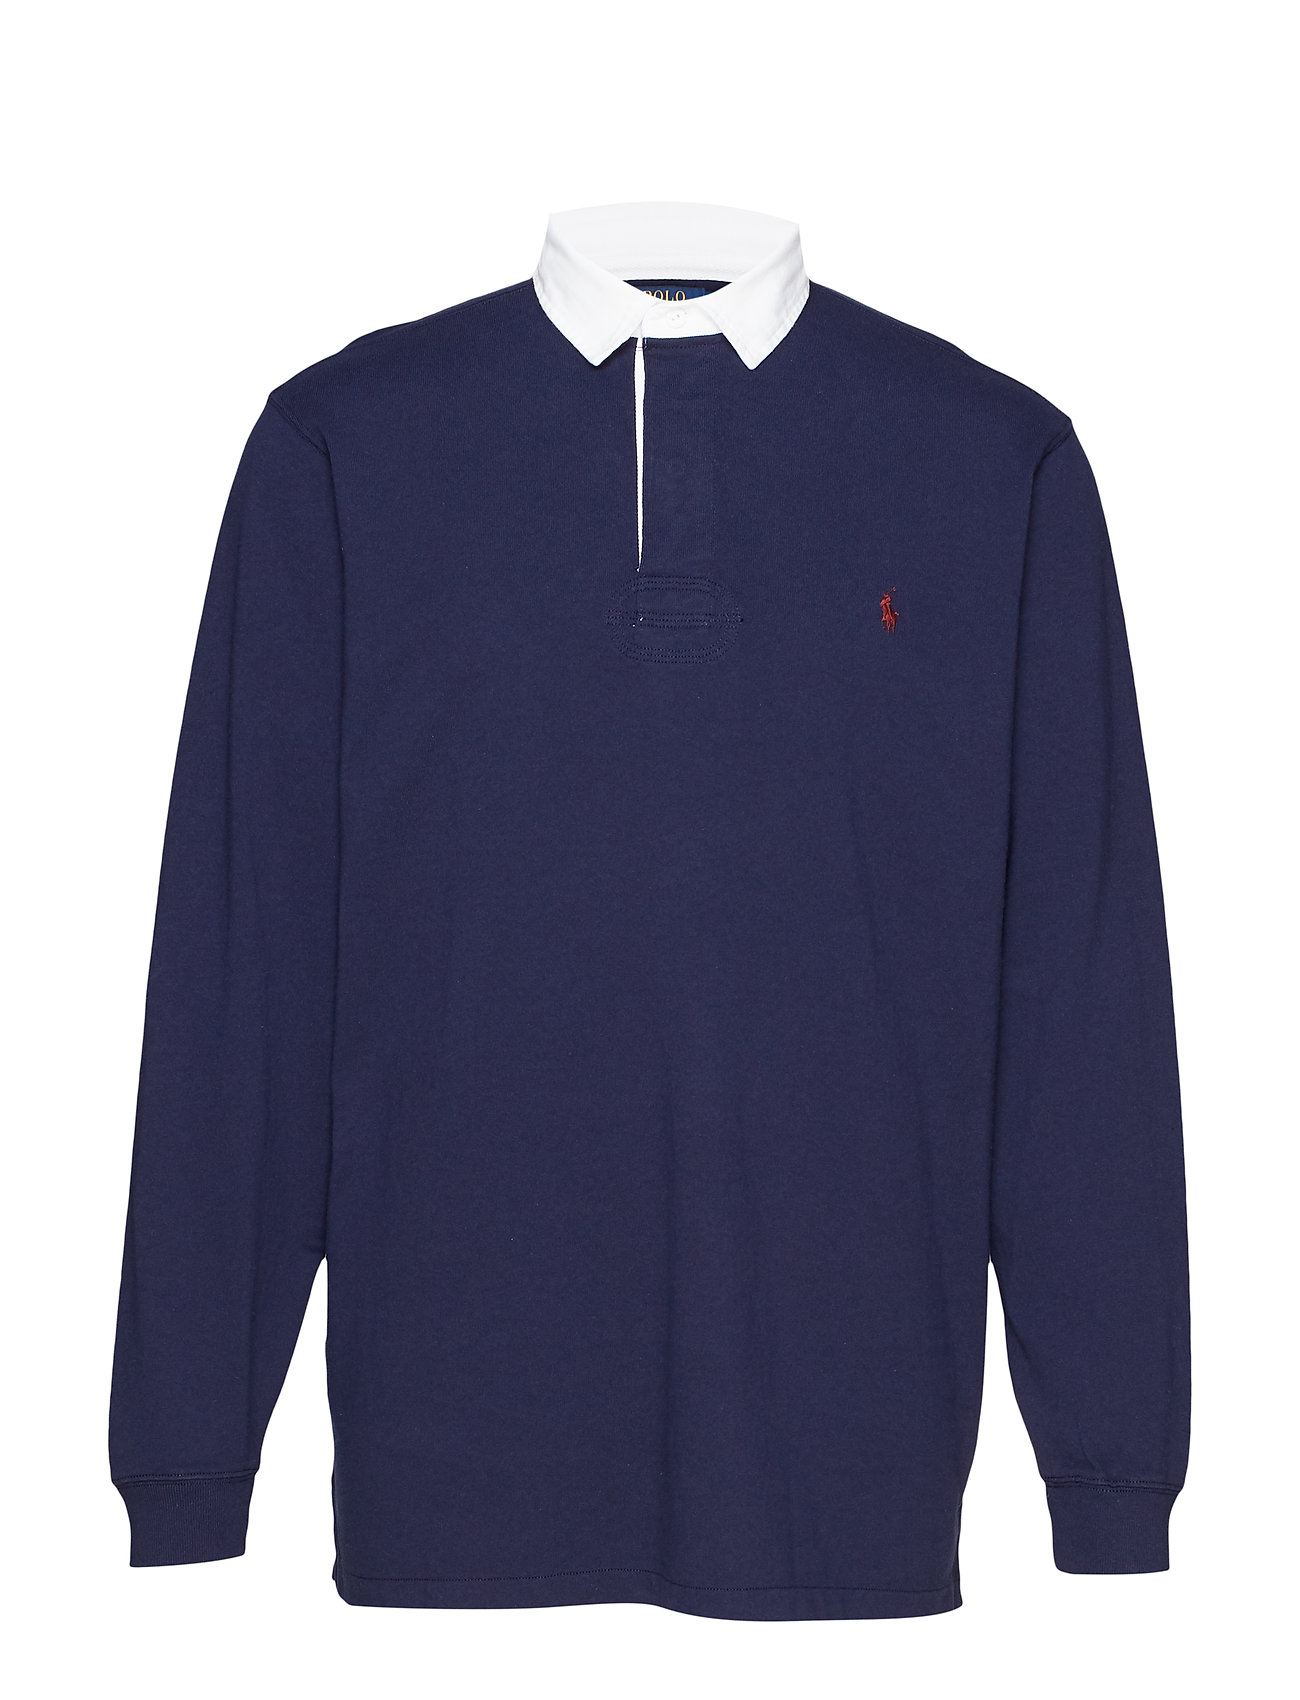 Polo Ralph Lauren Big & Tall The Iconic Rugby Shirt - FRENCH NAVY/C3924